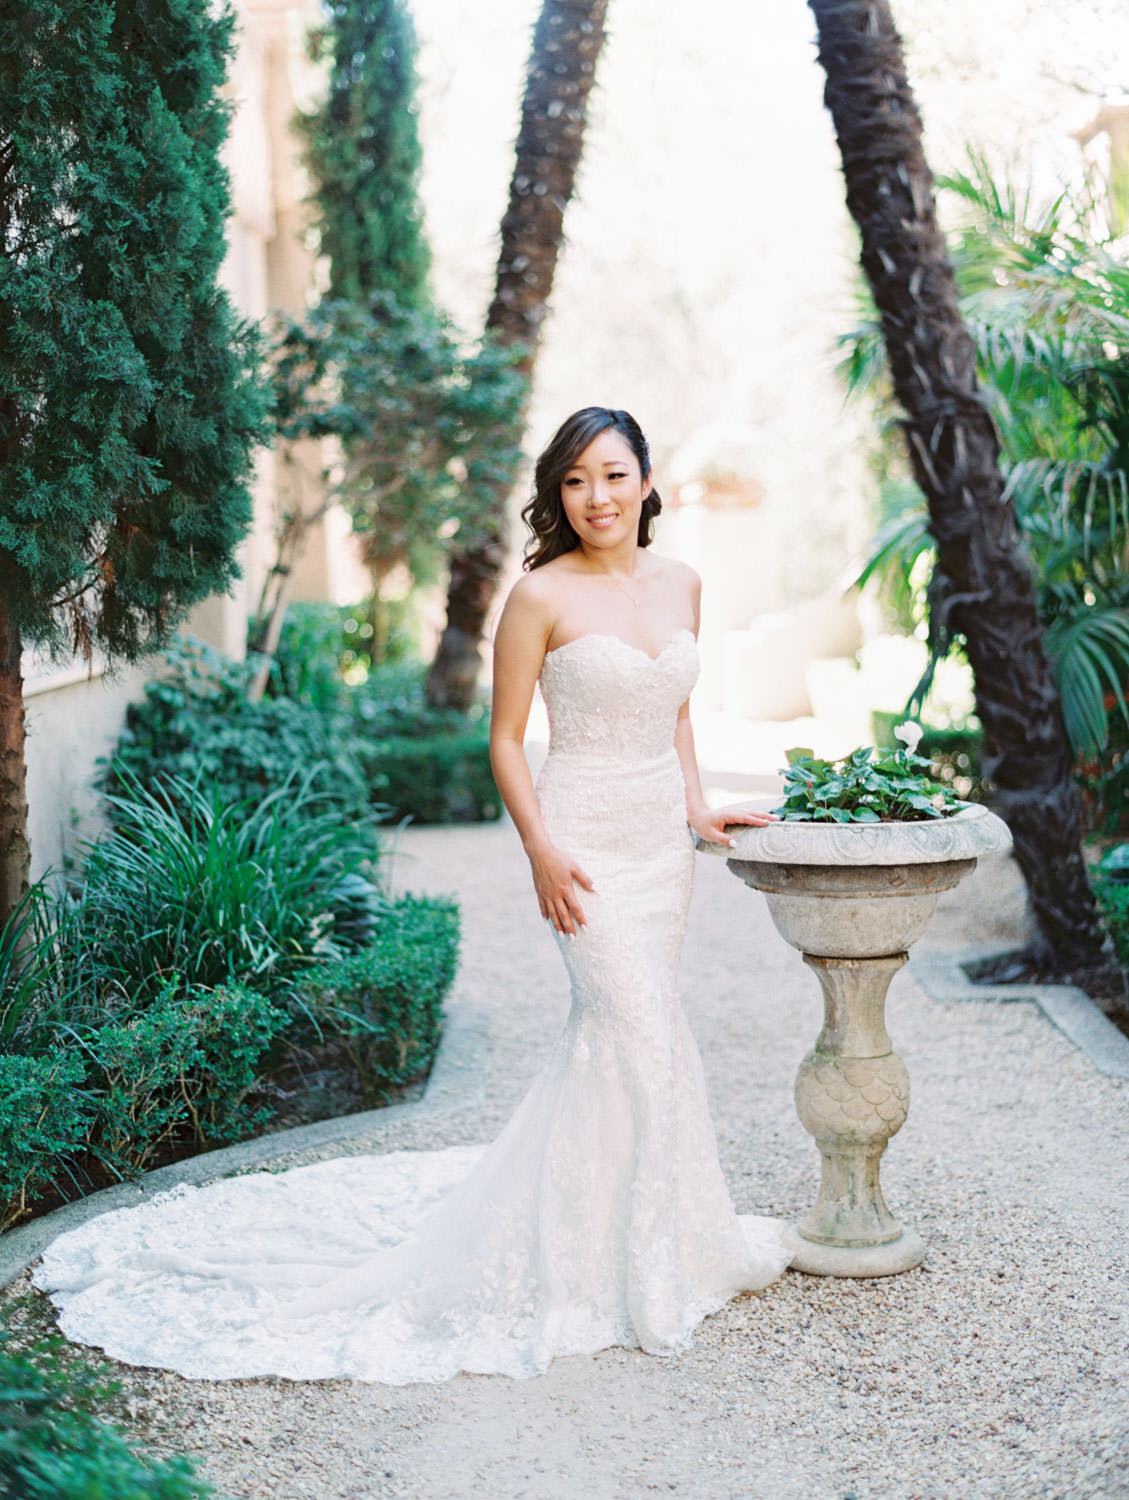 Bridal portrait in front of cyprus tree grove and fountain. Bride in a Martina Liana gown from the White Flower Bridal Boutique. Rancho Bernardo Inn wedding. Film photo by Cavin Elizabeth Photography